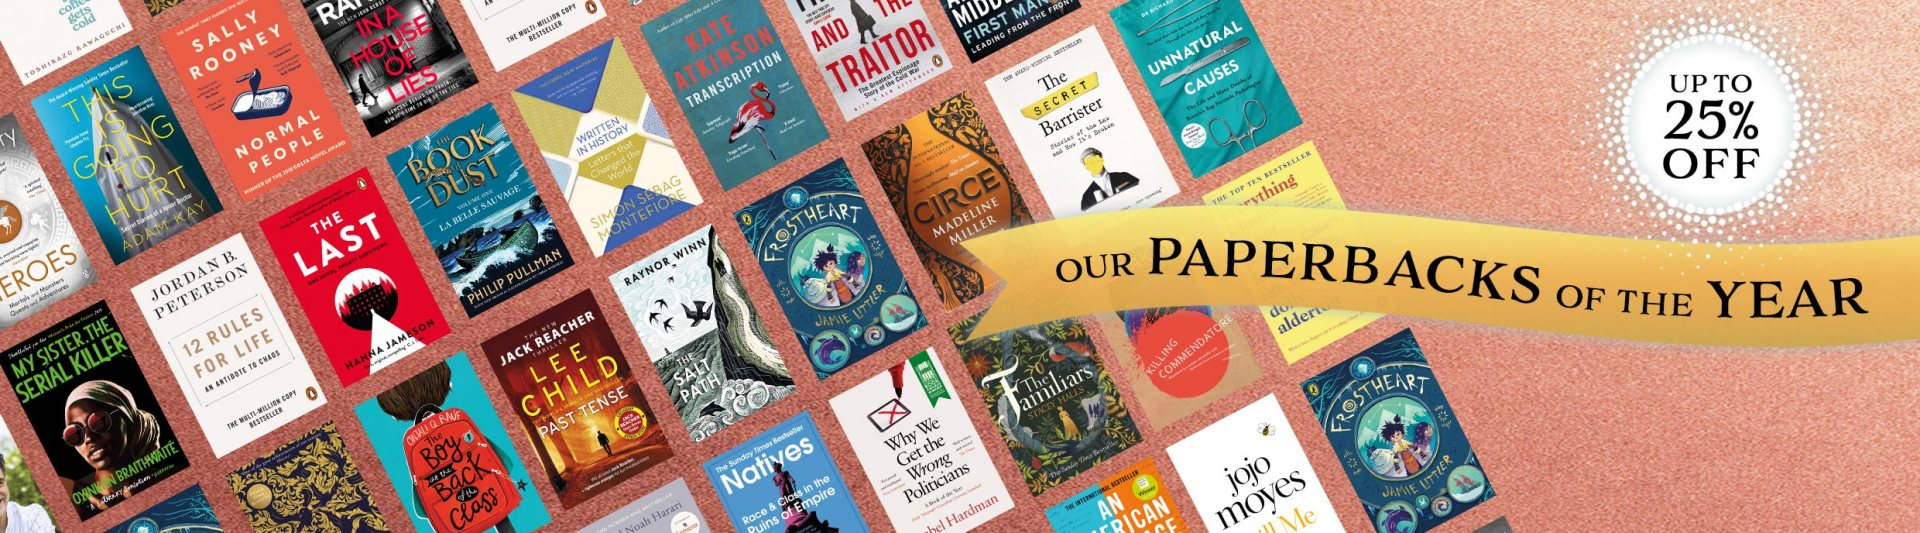 Our Paperbacks of the Year